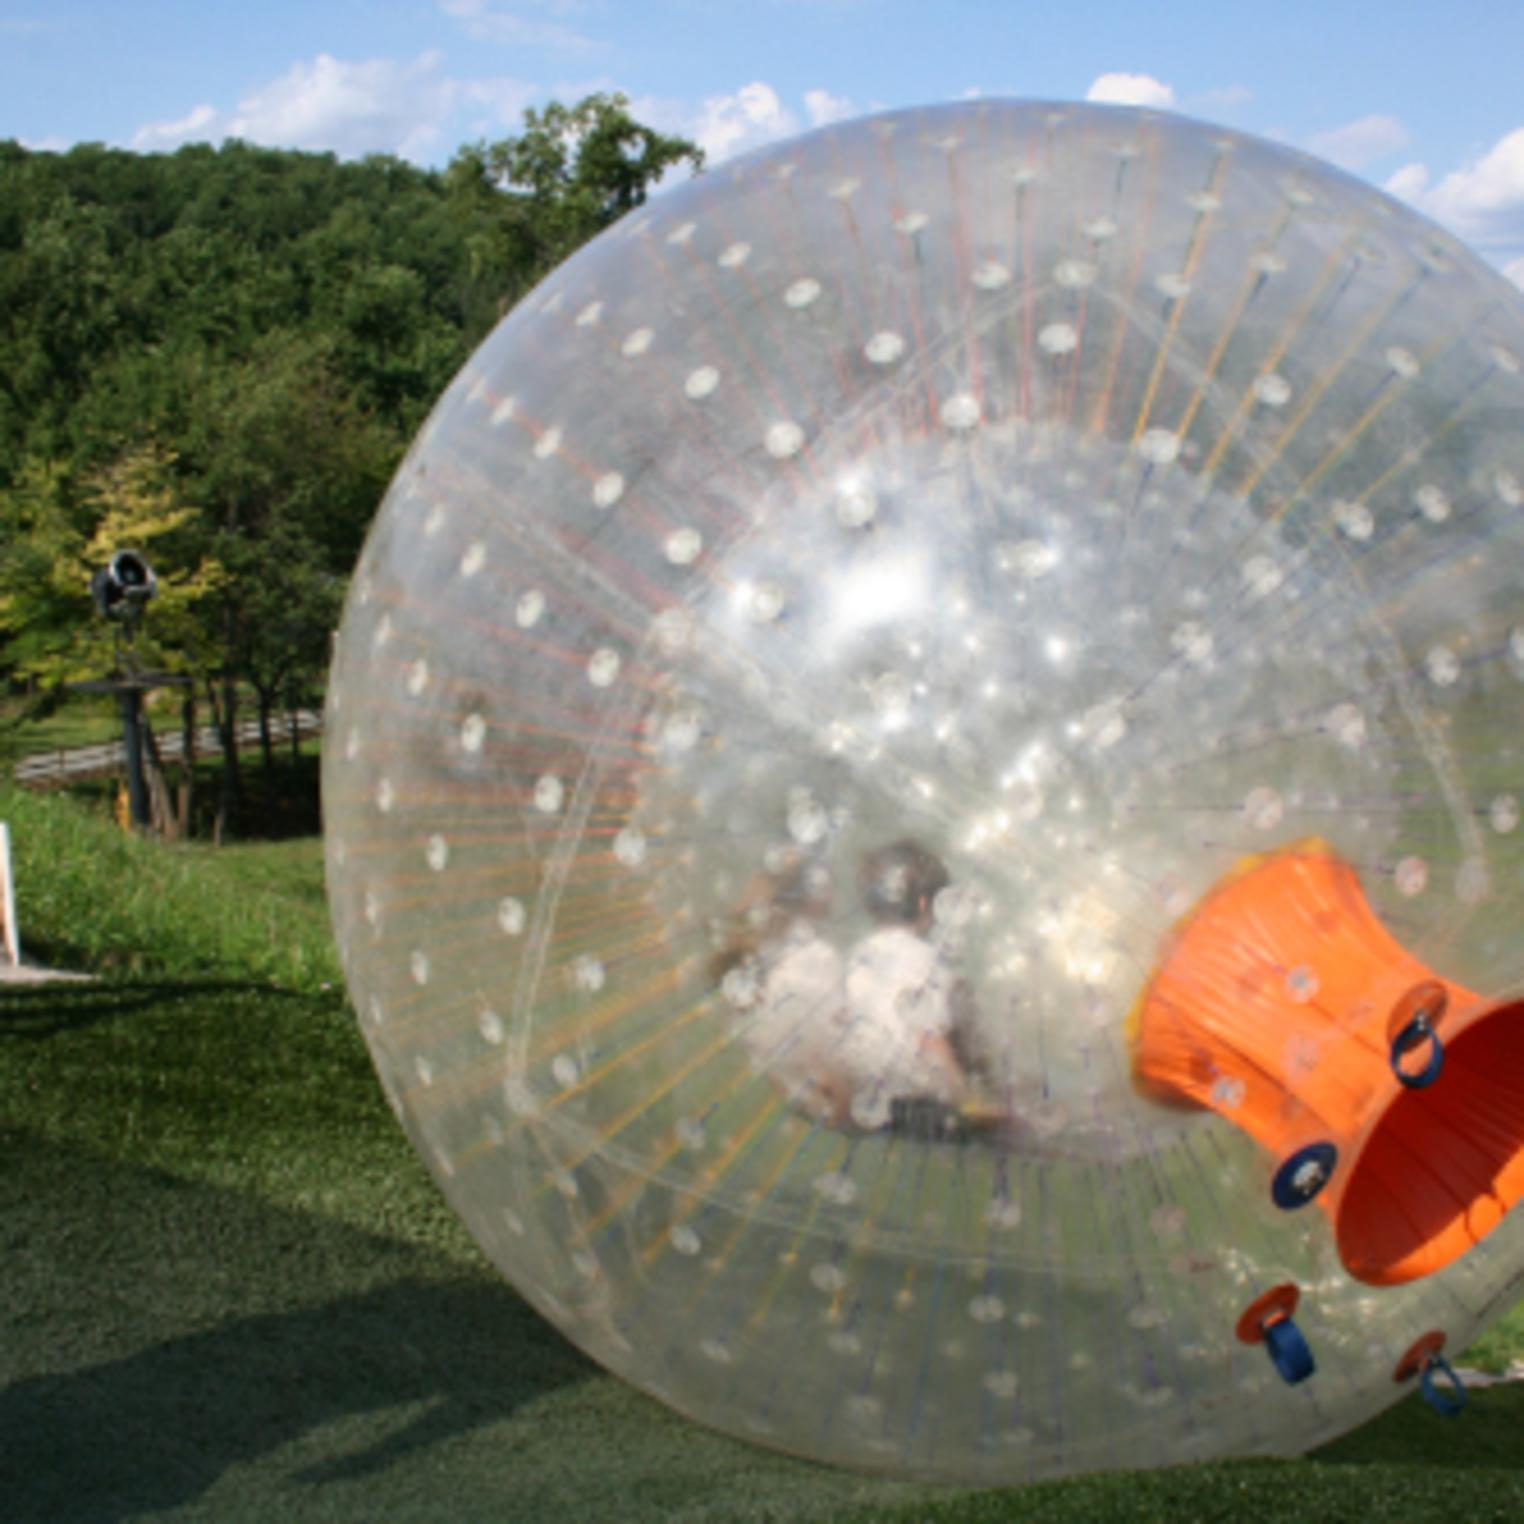 Roll down the hill inside a giant zorb - OGO ball in Central PA at Roundtop Mountain Resort